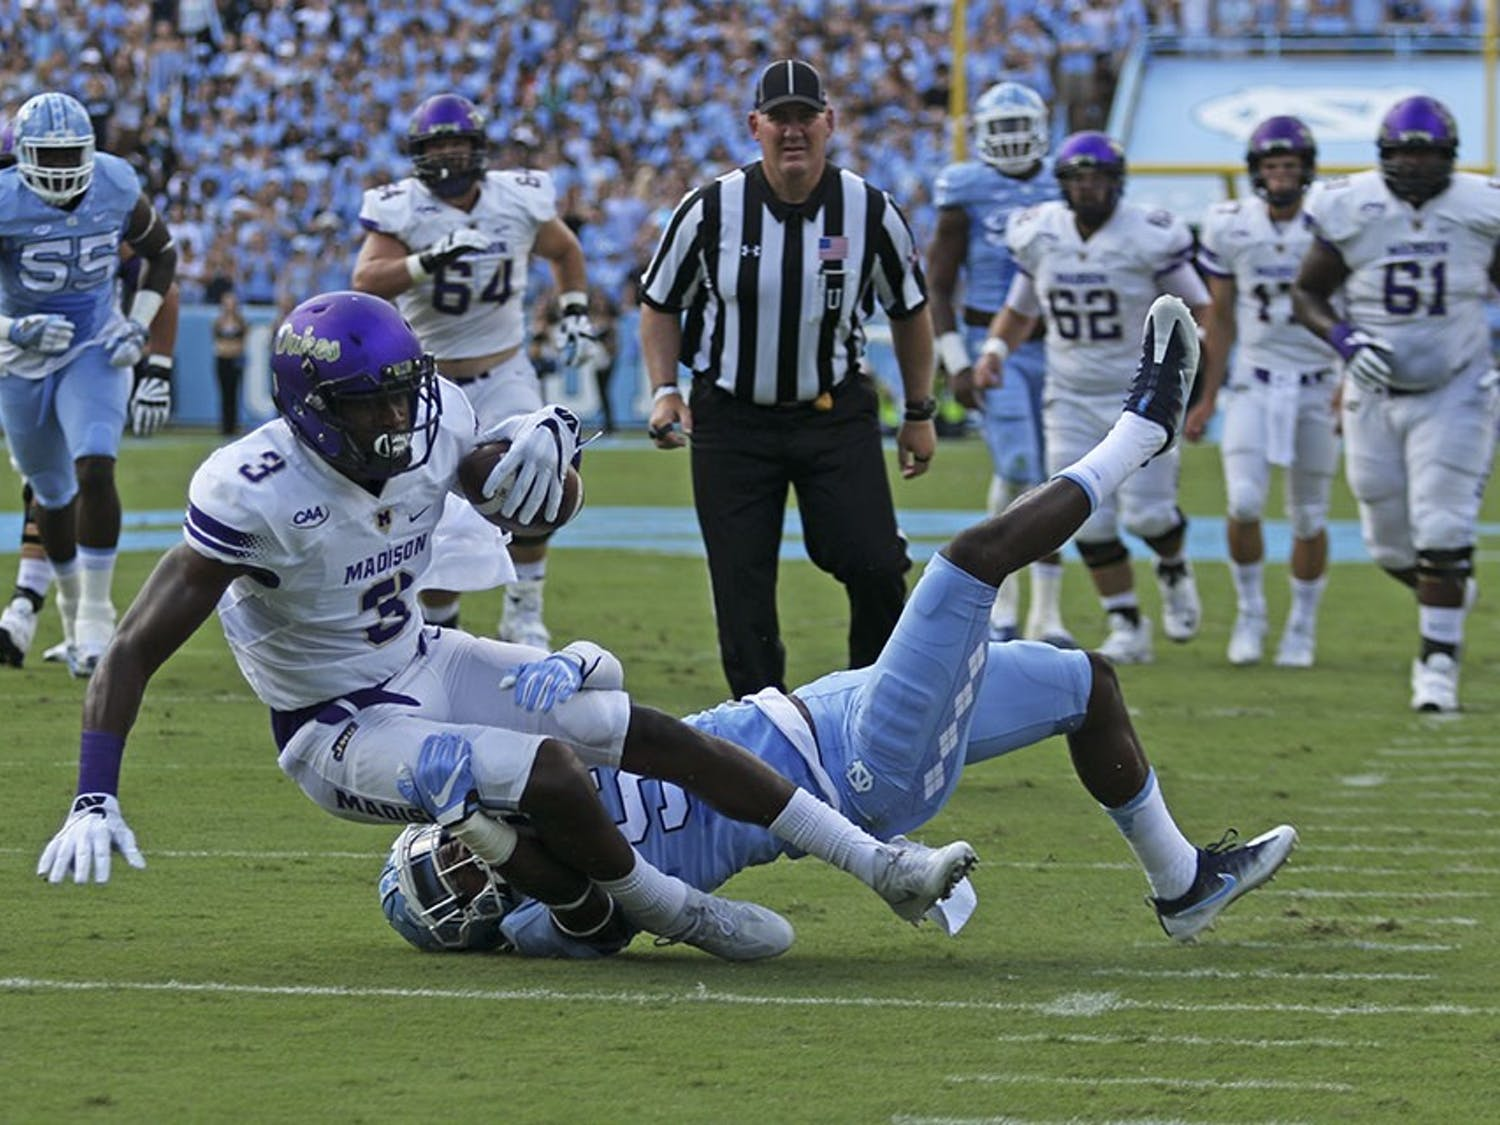 UNC cornerback Patrice Rene (5) tackles James Madison's Domo Taylor (3) on Saturday.